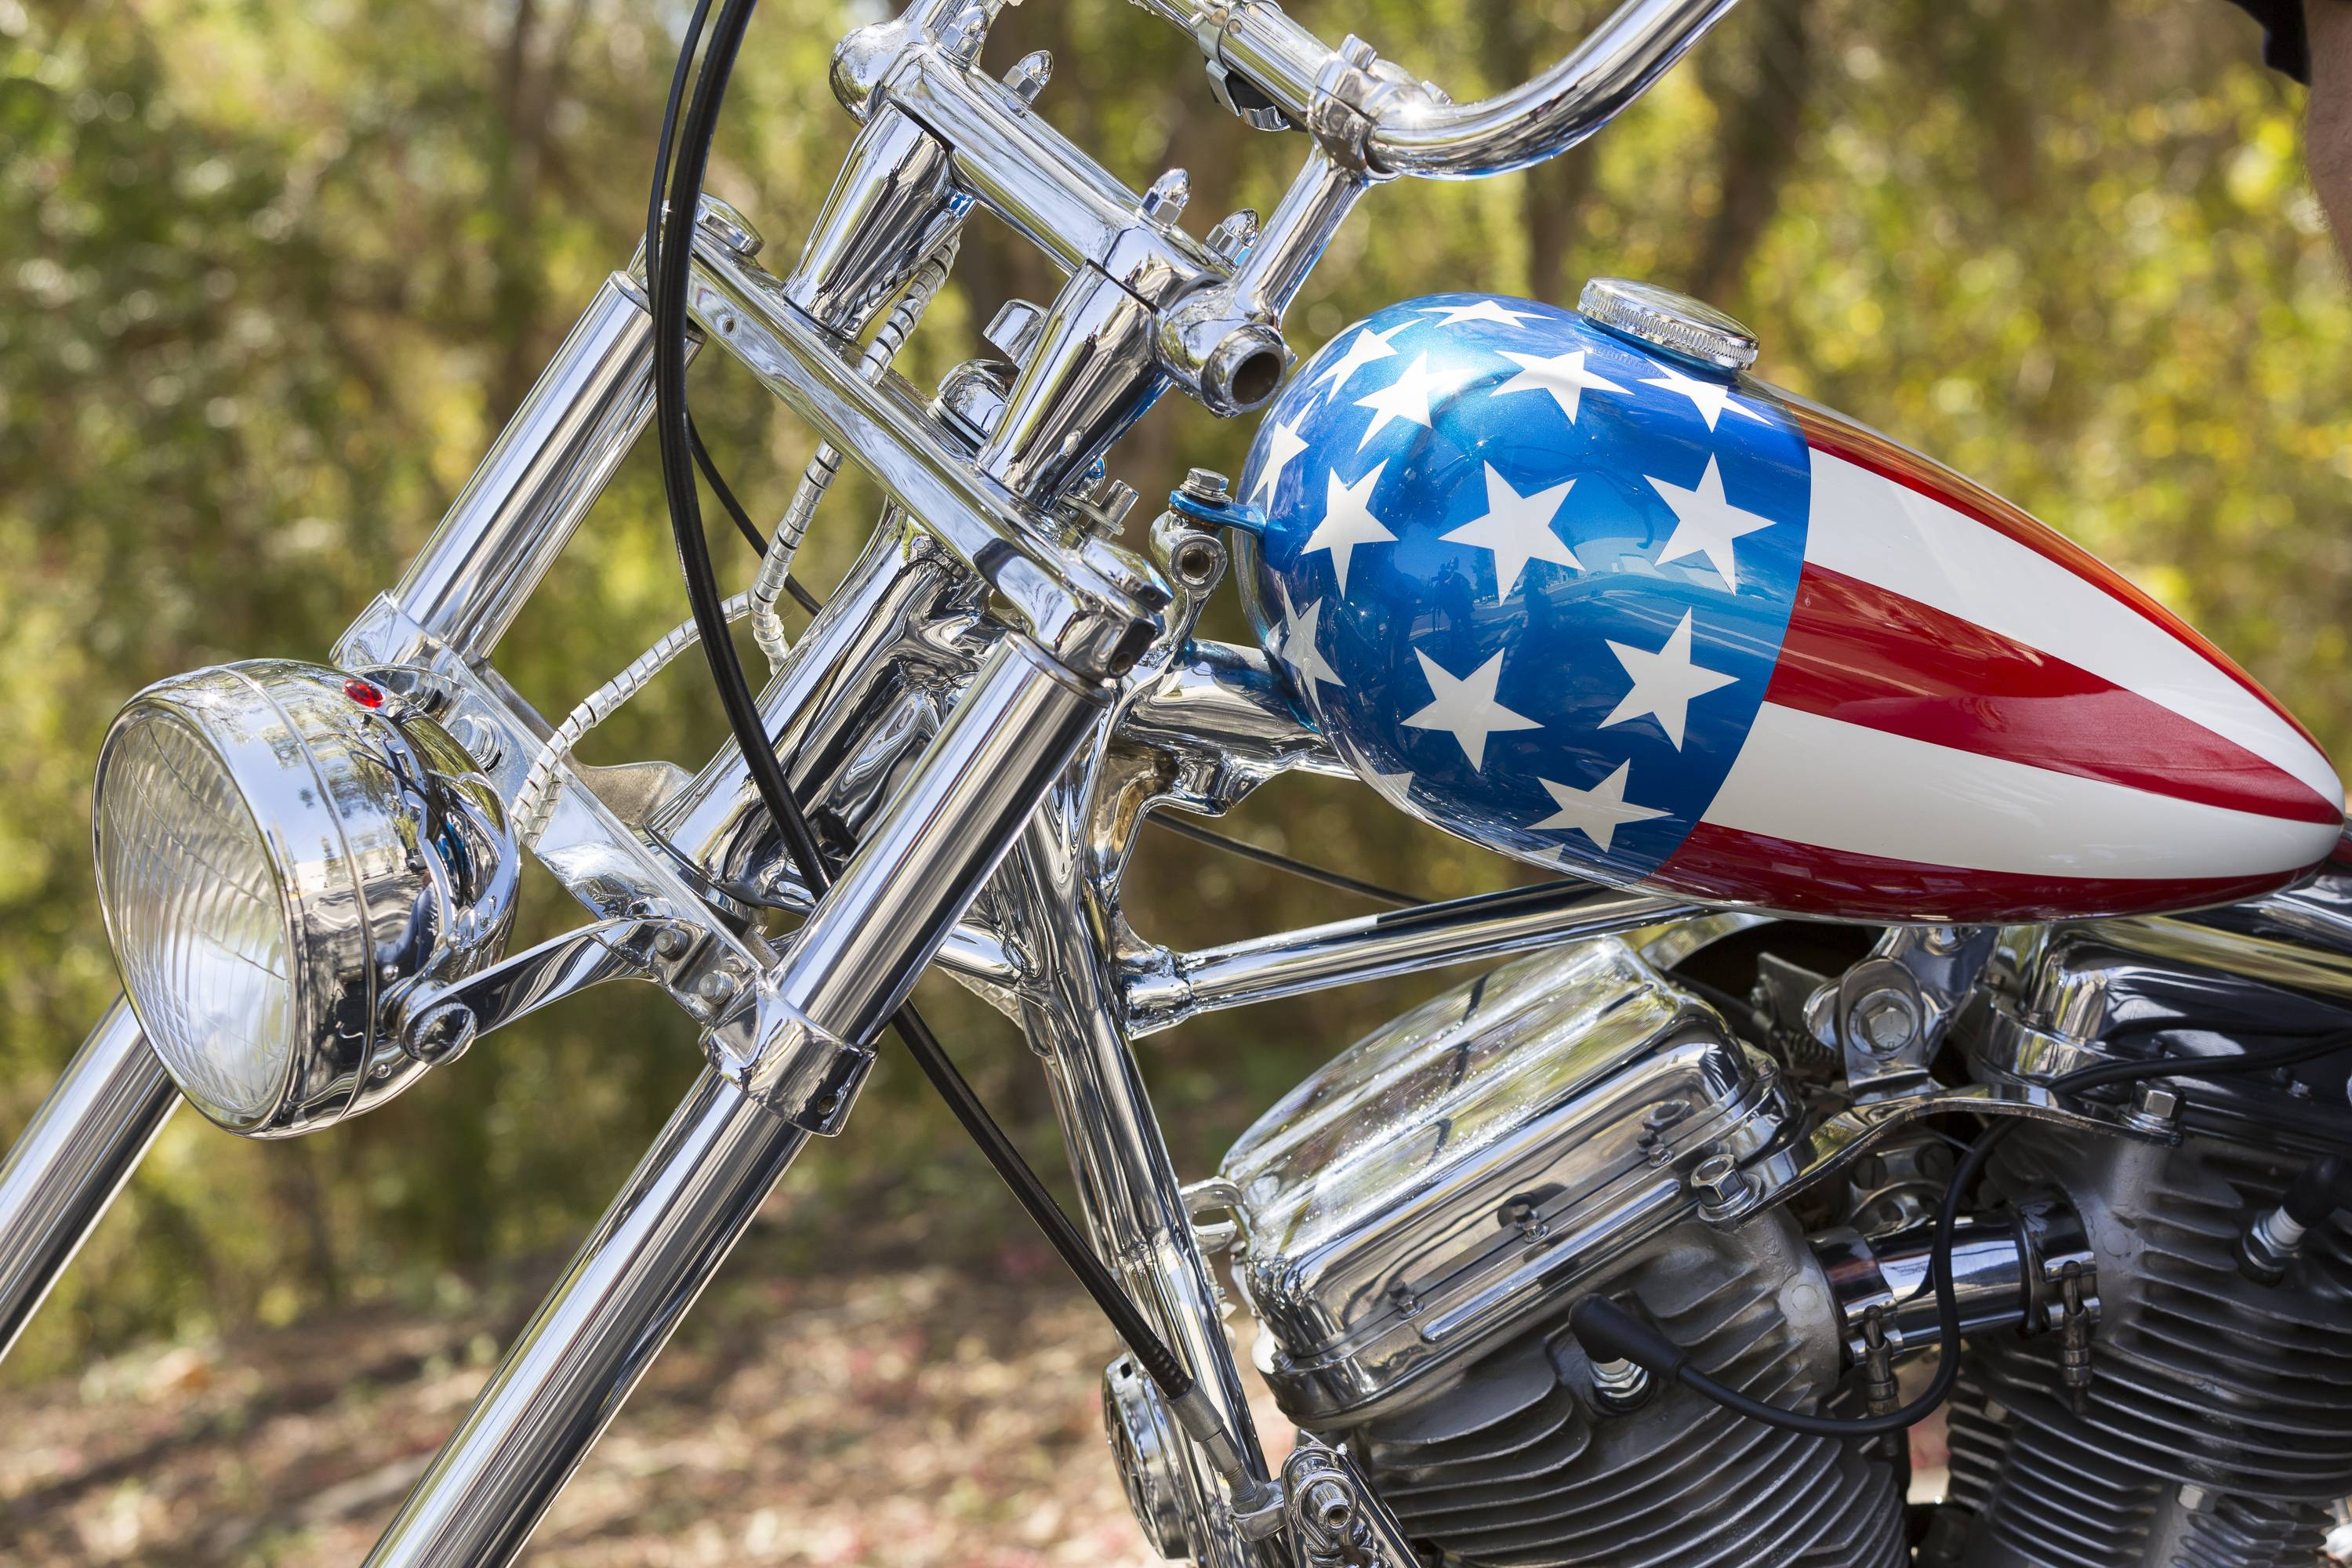 "The Captain America chopper Peter Fonda rode in ""Easy Rider"" is one of the most recognizable motorcycles of all time. The auction house Profiles in History estimates the Harley-Davidson will bring between $1 million and $1.2 million at its Oct. 18, 2014 sale."